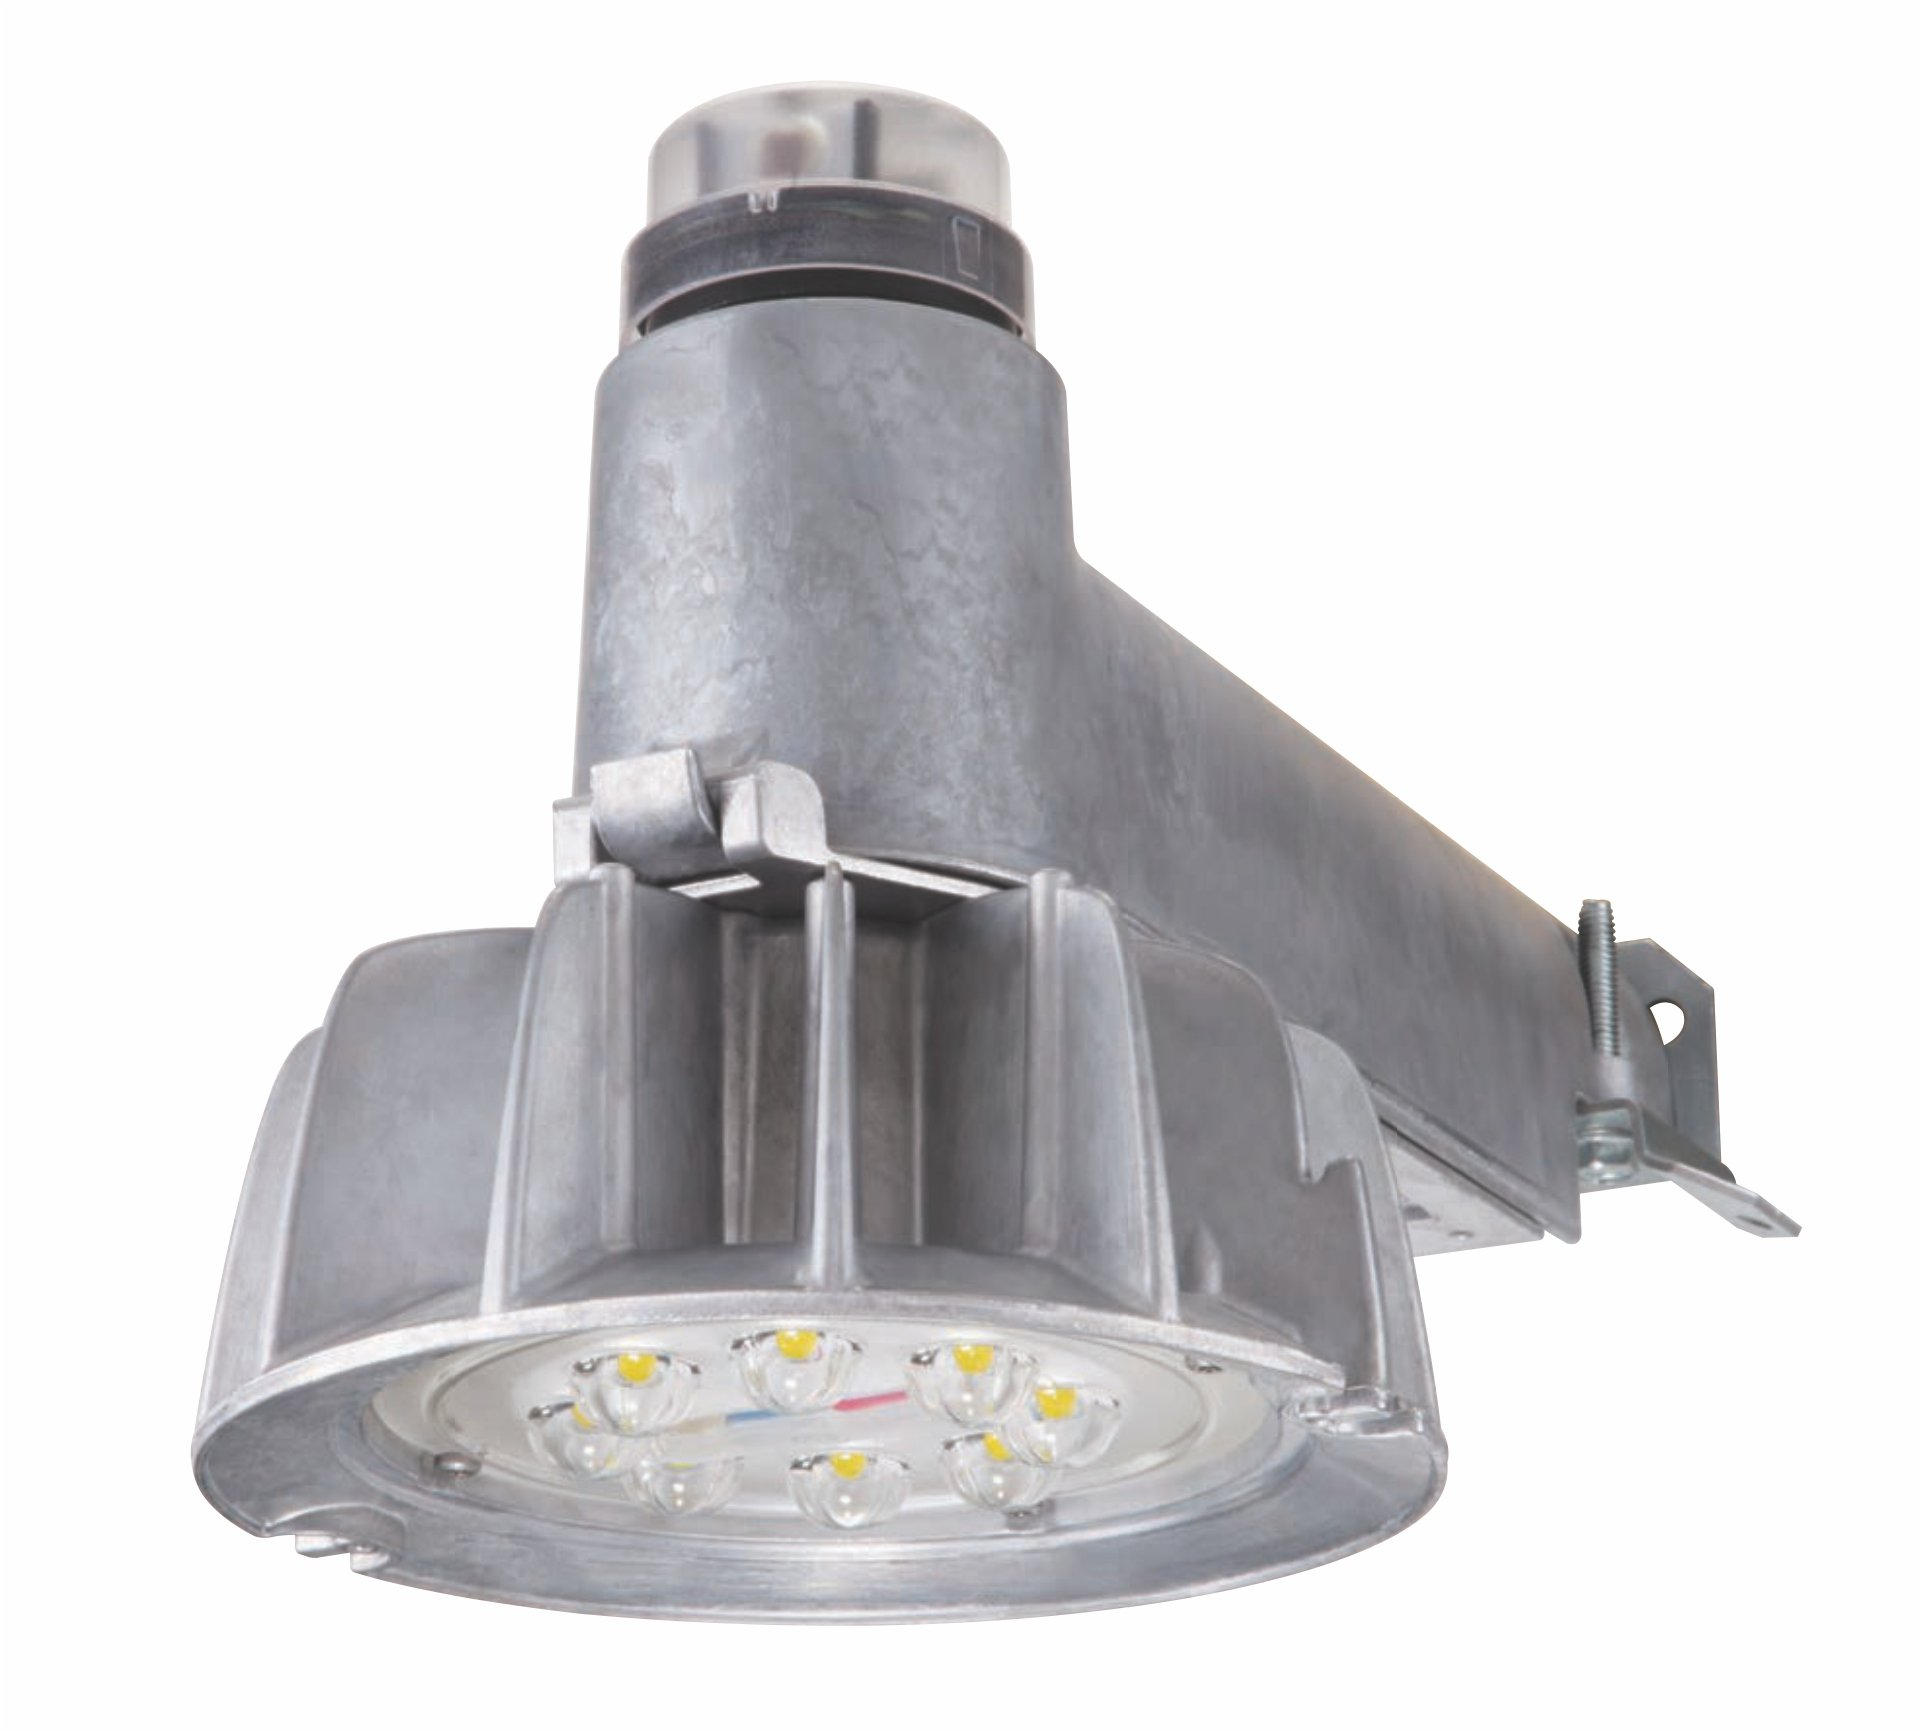 Lumark CTKRV1A Caretaker LED Area Luminaire, 50W